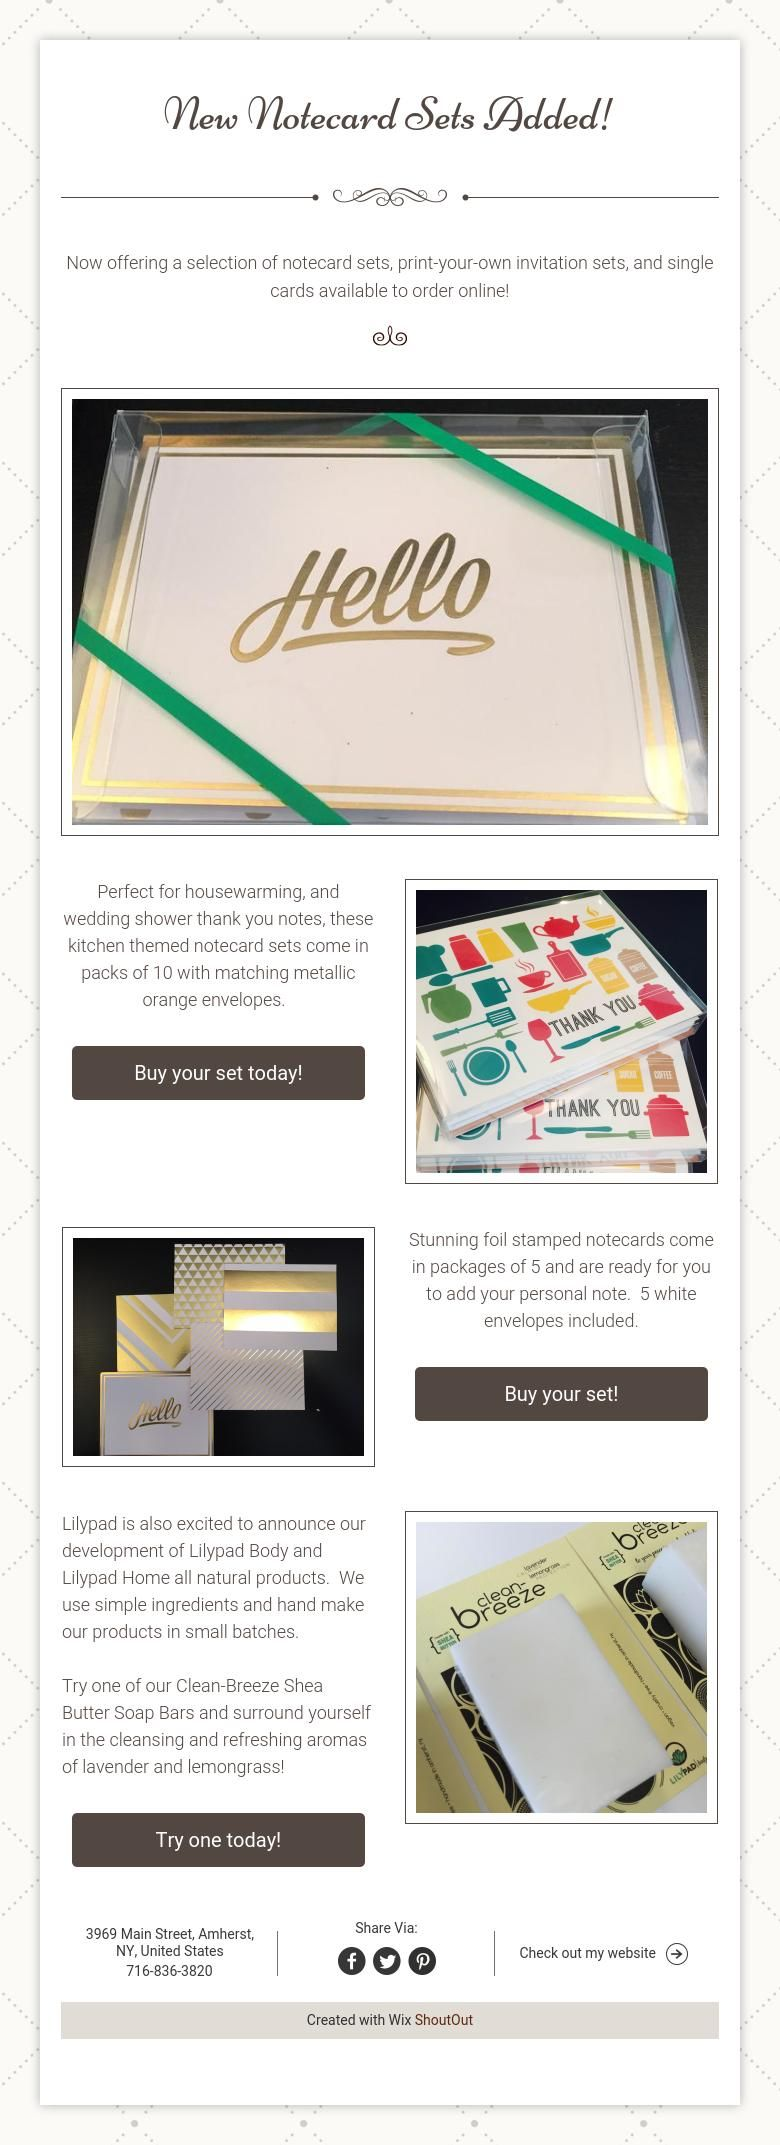 New Notecard Sets Added!